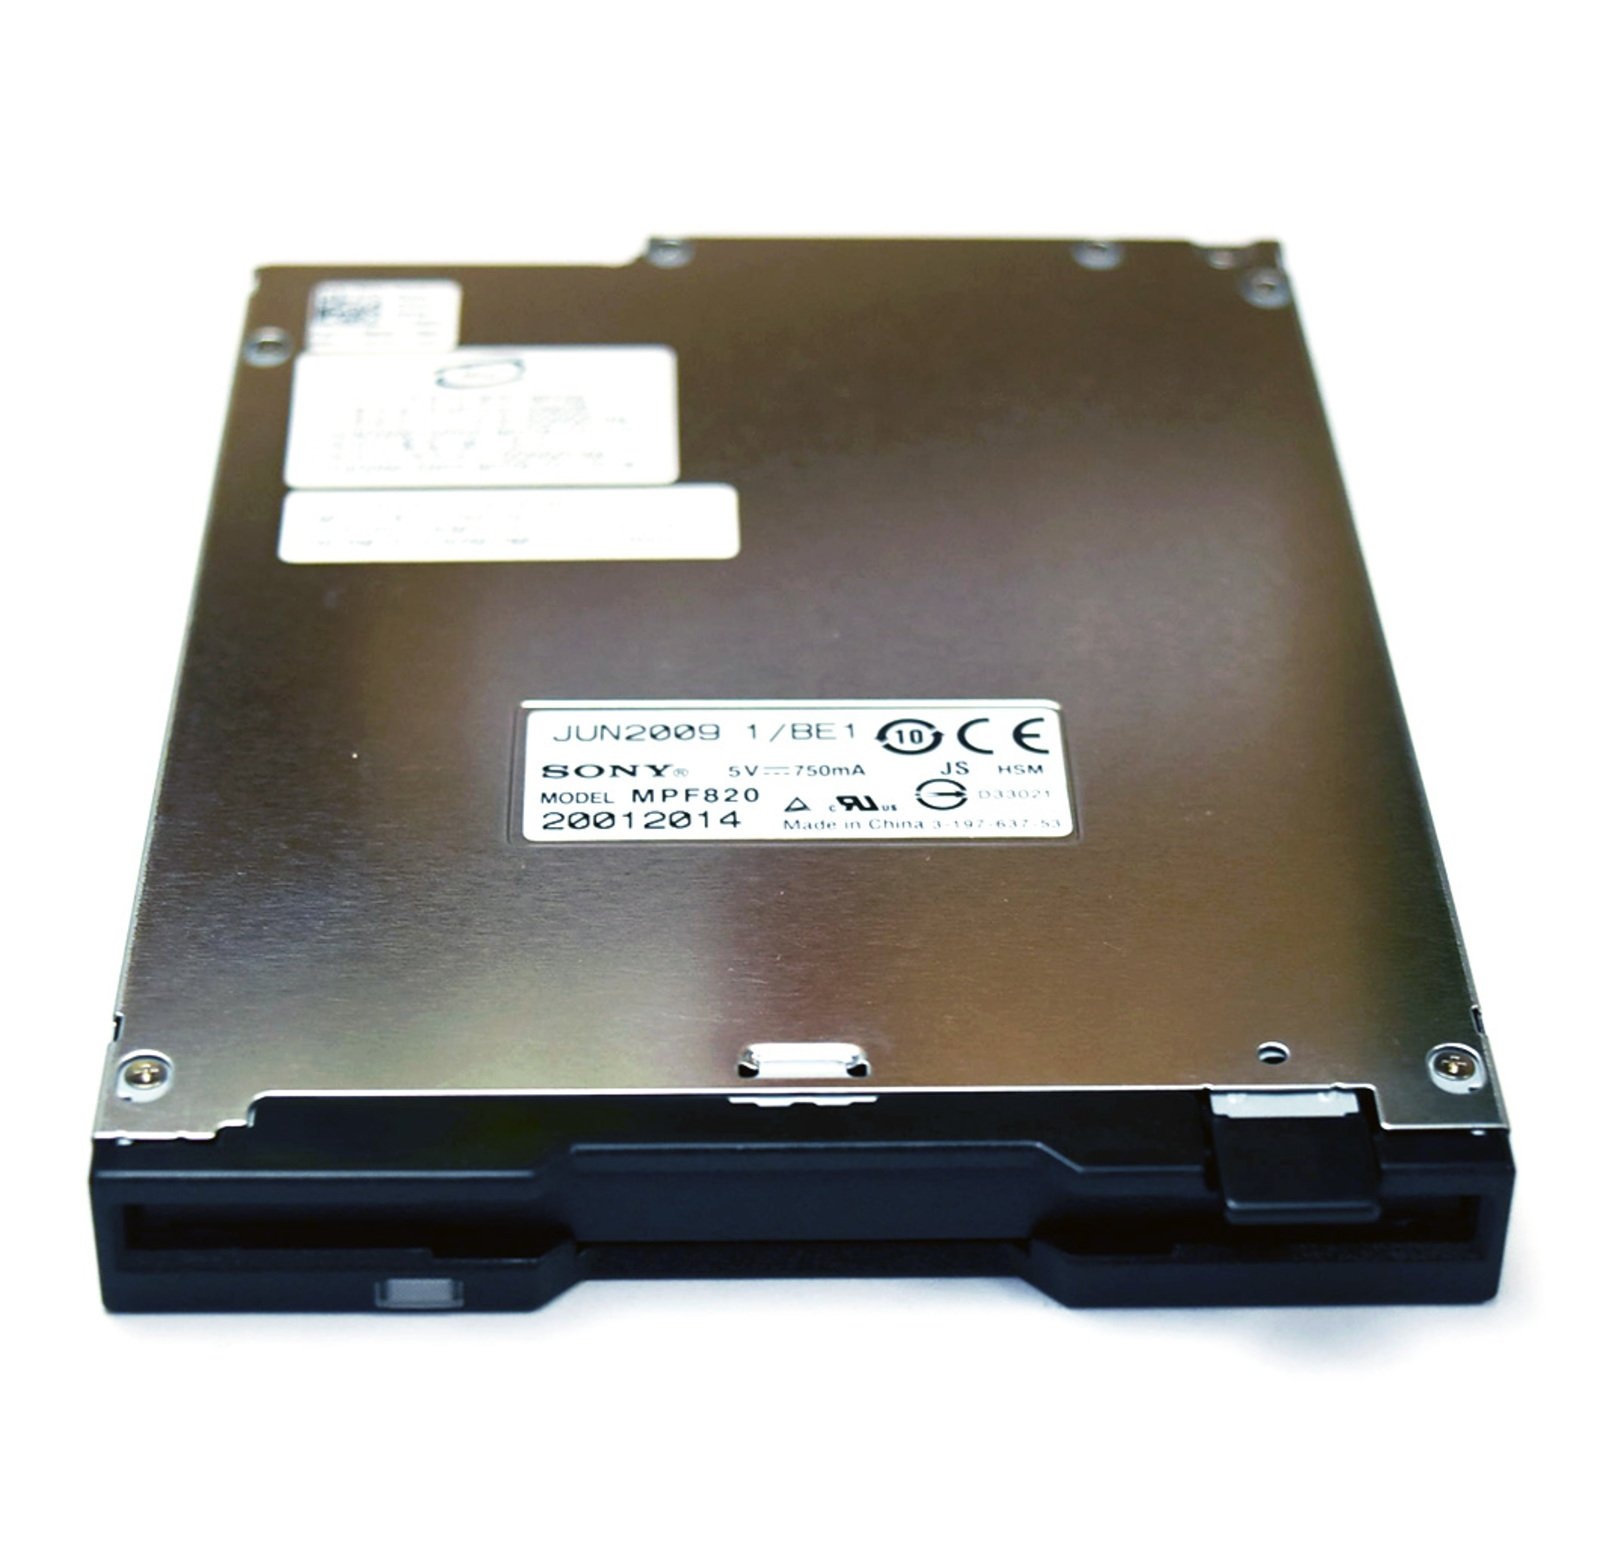 Genuine OEM Dell CR620 Slim Internal Floppy Disk Drive Sony MPF820 1.44 MB 3.5 Inch IDE Floppy Drive 36L8645 Black Front Bezel Faceplate